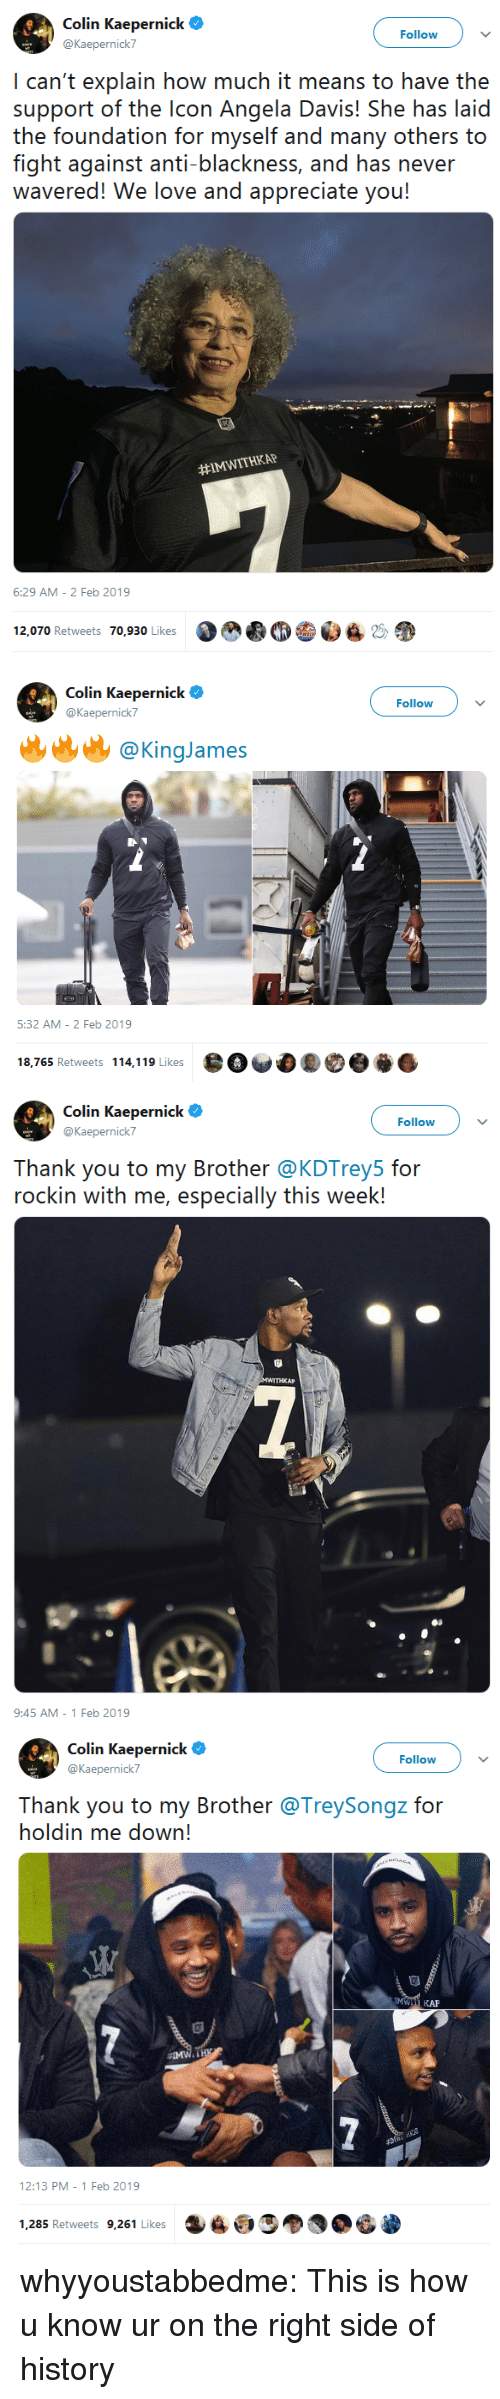 Colin Kaepernick, Love, and Tumblr: Follow  @Kaepernick7  I can't explain how much it means to have the  support of the lcon Angela Davis! She has laid  the foundation for myself and many others to  fight against anti-blackness, and has never  wavered! We love and appreciate you!  #IMWITHKAP  6:29 AM- 2 Feb 2019  12,070 Retweets 70,930 LikesC  2   Colin Kaepernick  @Kaepernick7  Follow  逃@KingJames  5:32 AM- 2 Feb 2019  18,765 Retweets 114,119 Likes   Colin Kaepernick e  @Kaepernick7  Follow  Thank you to my Brother @KDTrey5 for  rockin with me, especially this week!  AP  9:45 AM- 1 Feb 2019   Colin Kaepernick  @Kaepernick7  Follow  Thank you to my Brother@TreySongz for  holdin me down!  12:13 PM-1 Feb 2019  1,285 Retweets 9,261 Likes whyyoustabbedme:  This is how u know ur on the right side of history